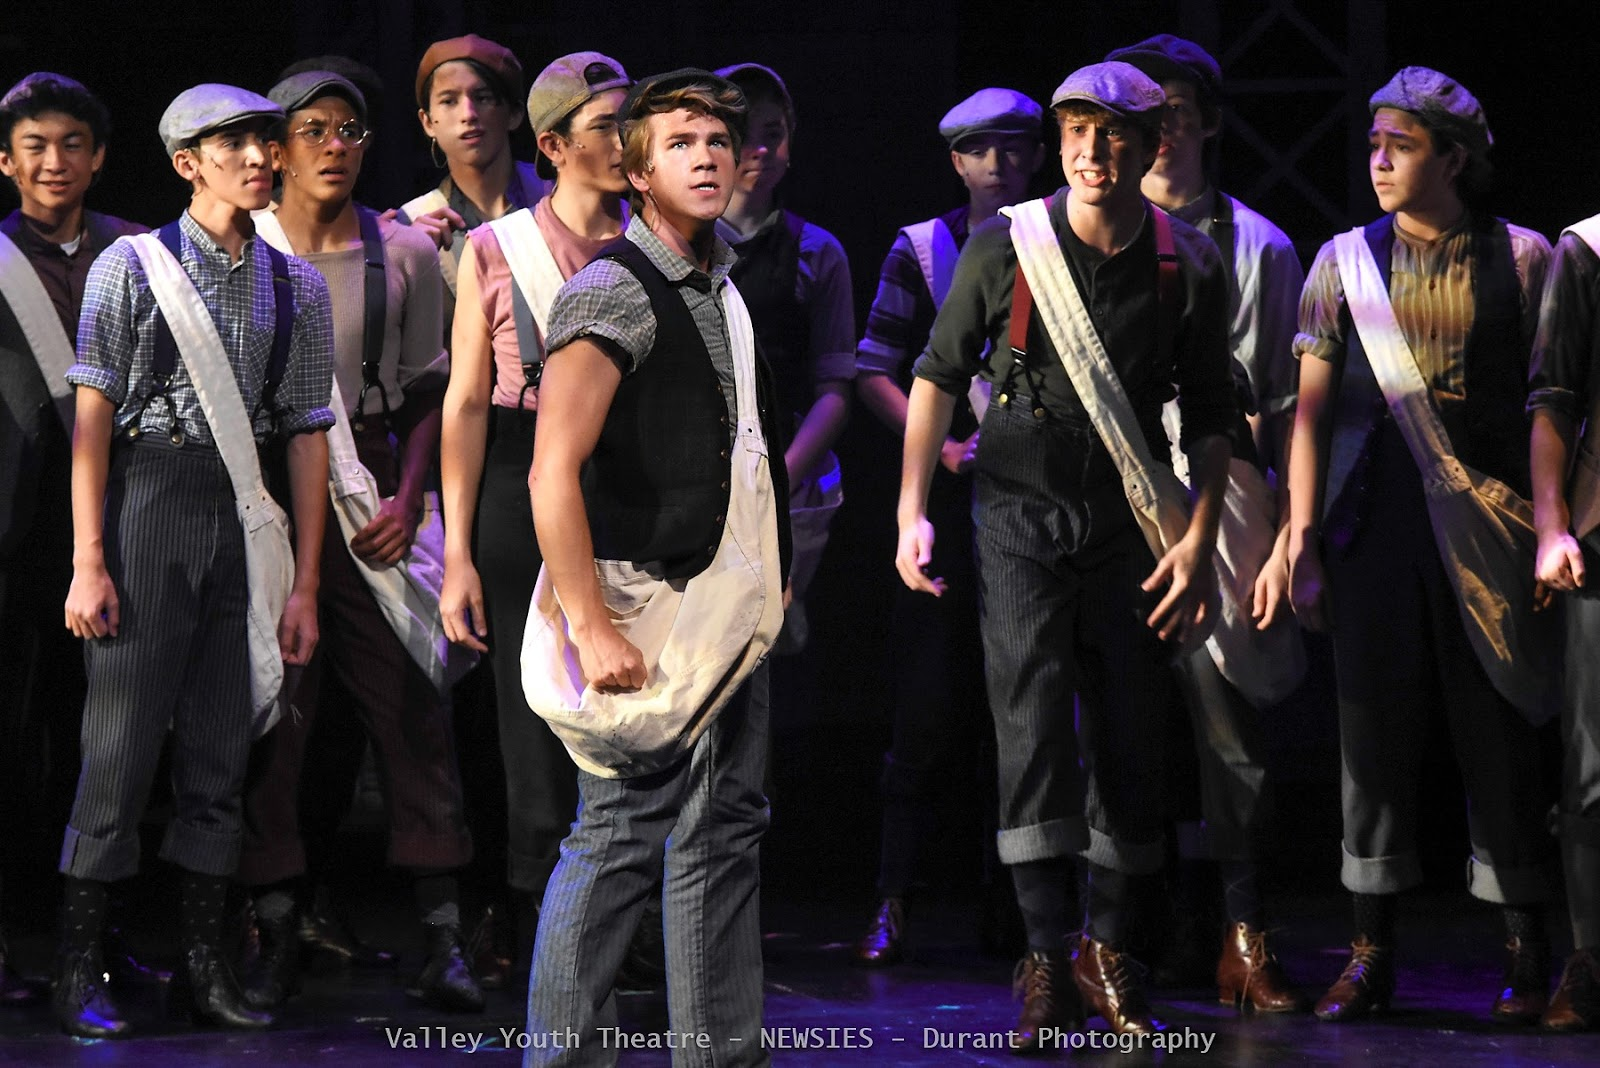 VYT-Newsies-selections-5.jpg